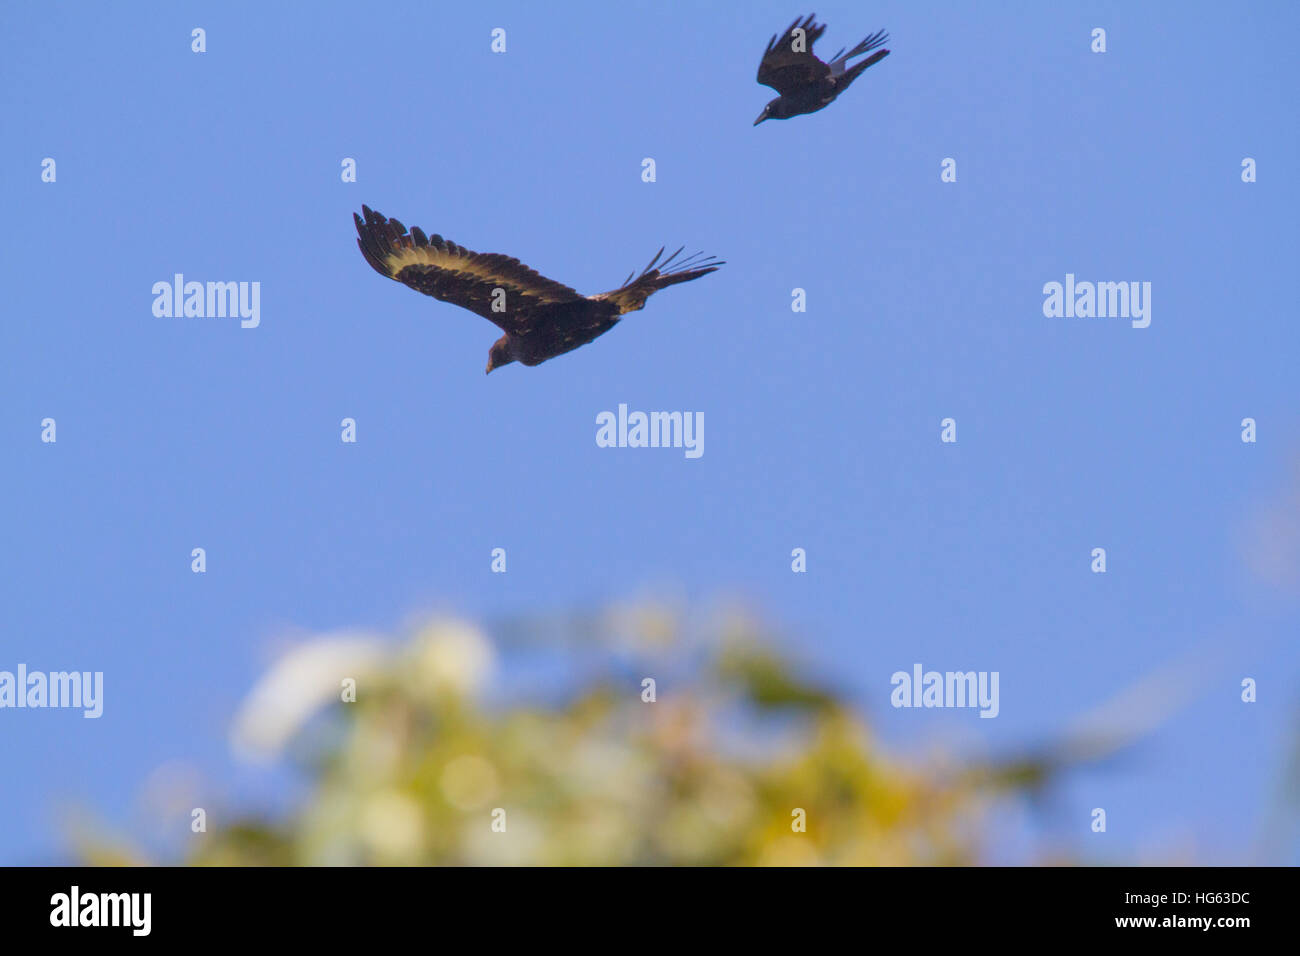 Wedge-tailed Eagle or Bunjil (Aquila audax), also sometimes known as the Eaglehawk in flight - Stock Image